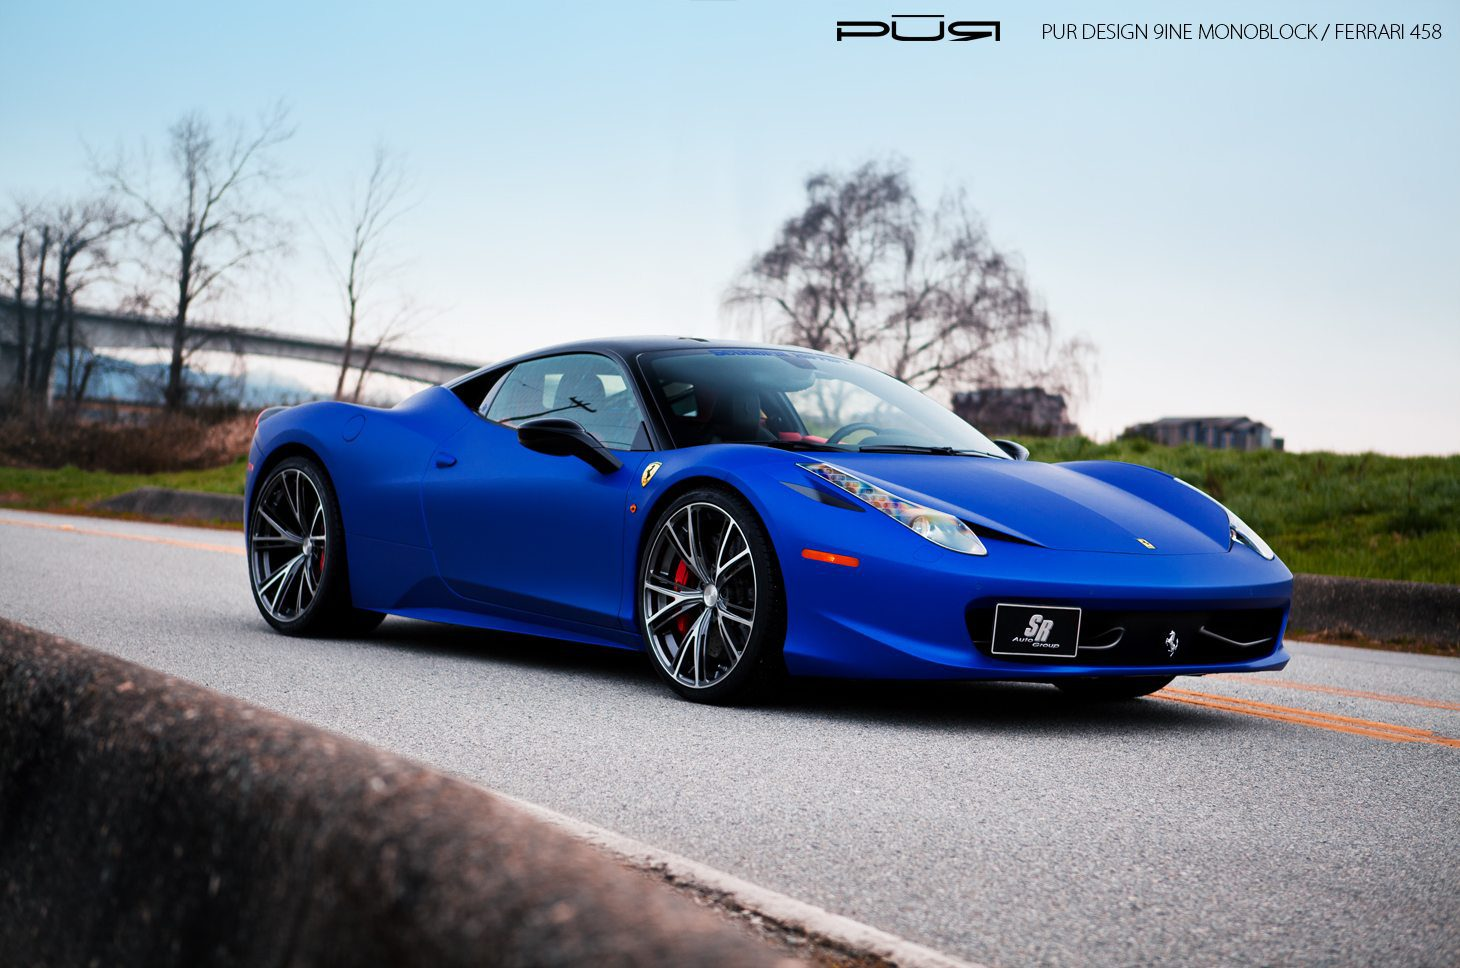 matte blue ferrari 458 italia - Ferrari 458 Blue And White